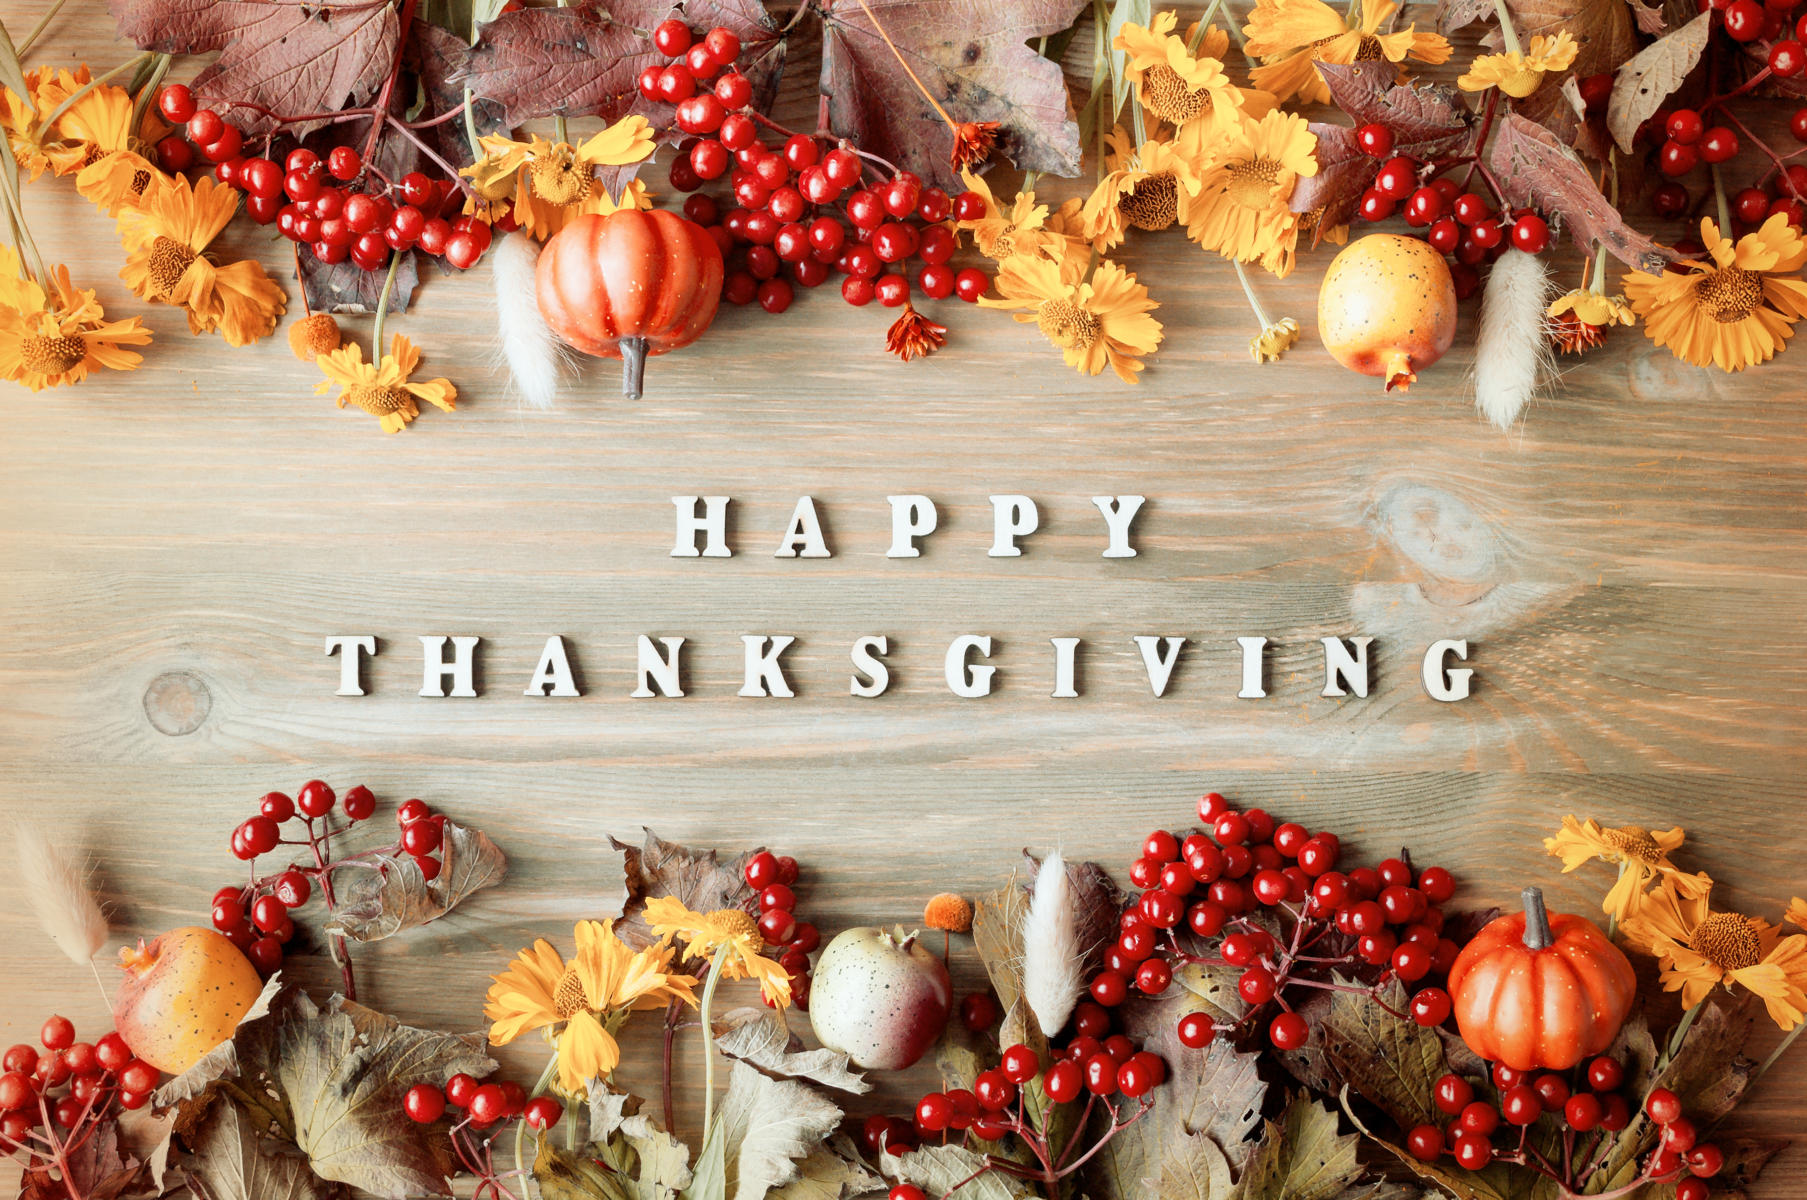 Thanksgiving in the USA: History and Traditions of the Holiday